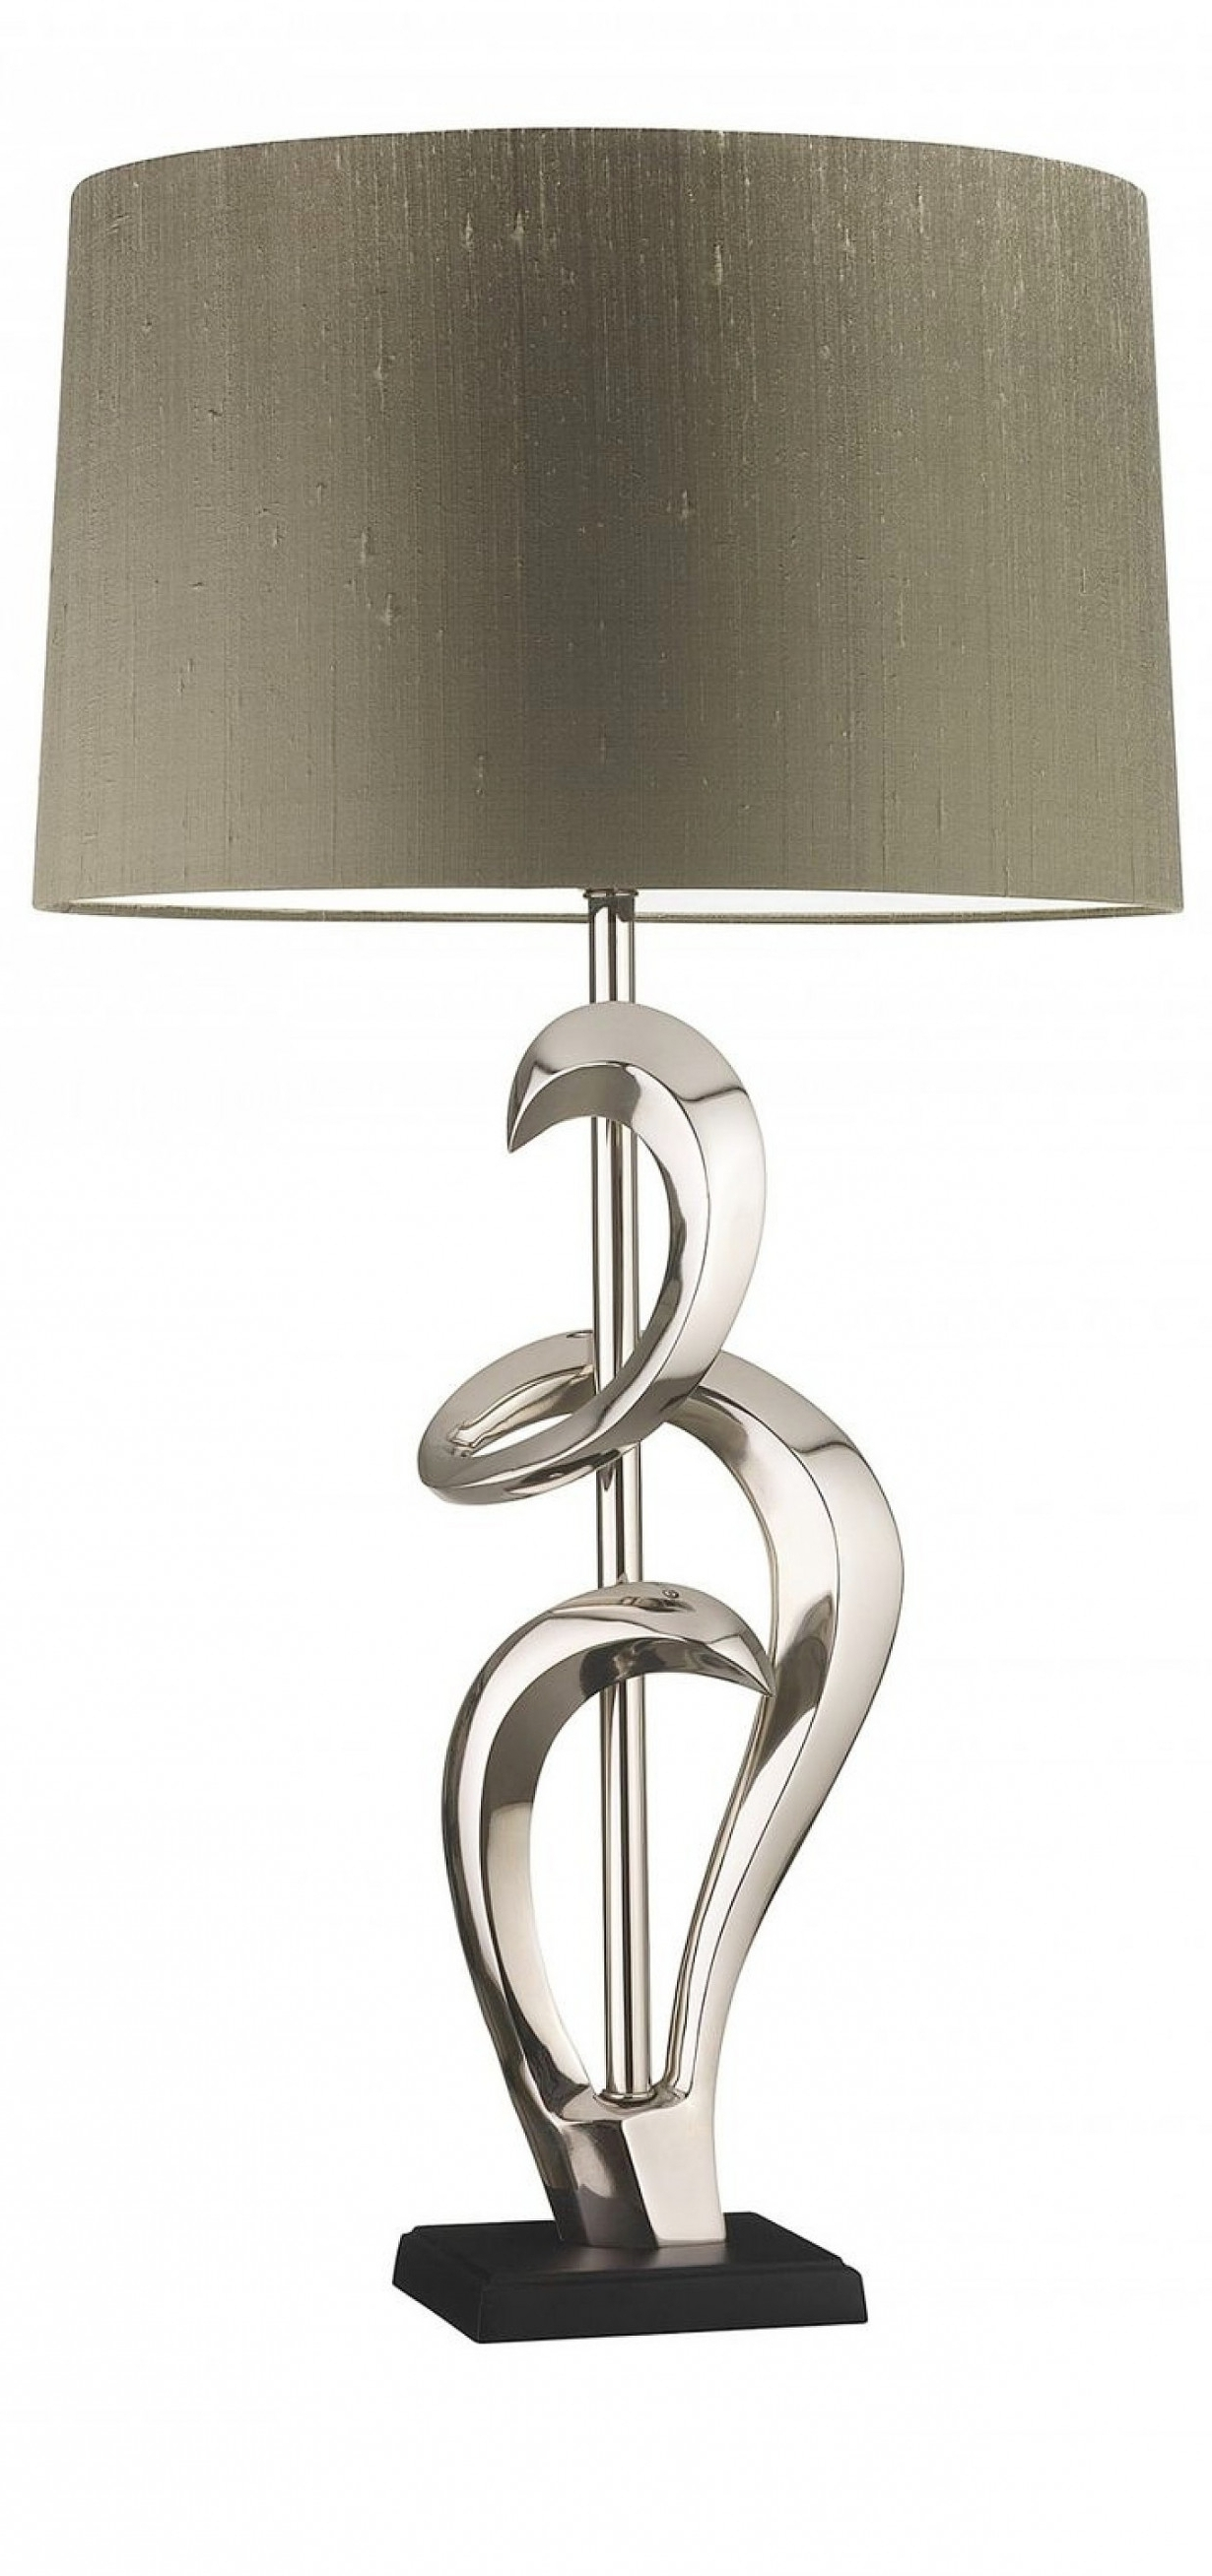 Favorite Walmart Living Room Table Lamps Intended For Walmart Lamps Better Homes And Gardens Living Room Table Lamps (View 6 of 20)